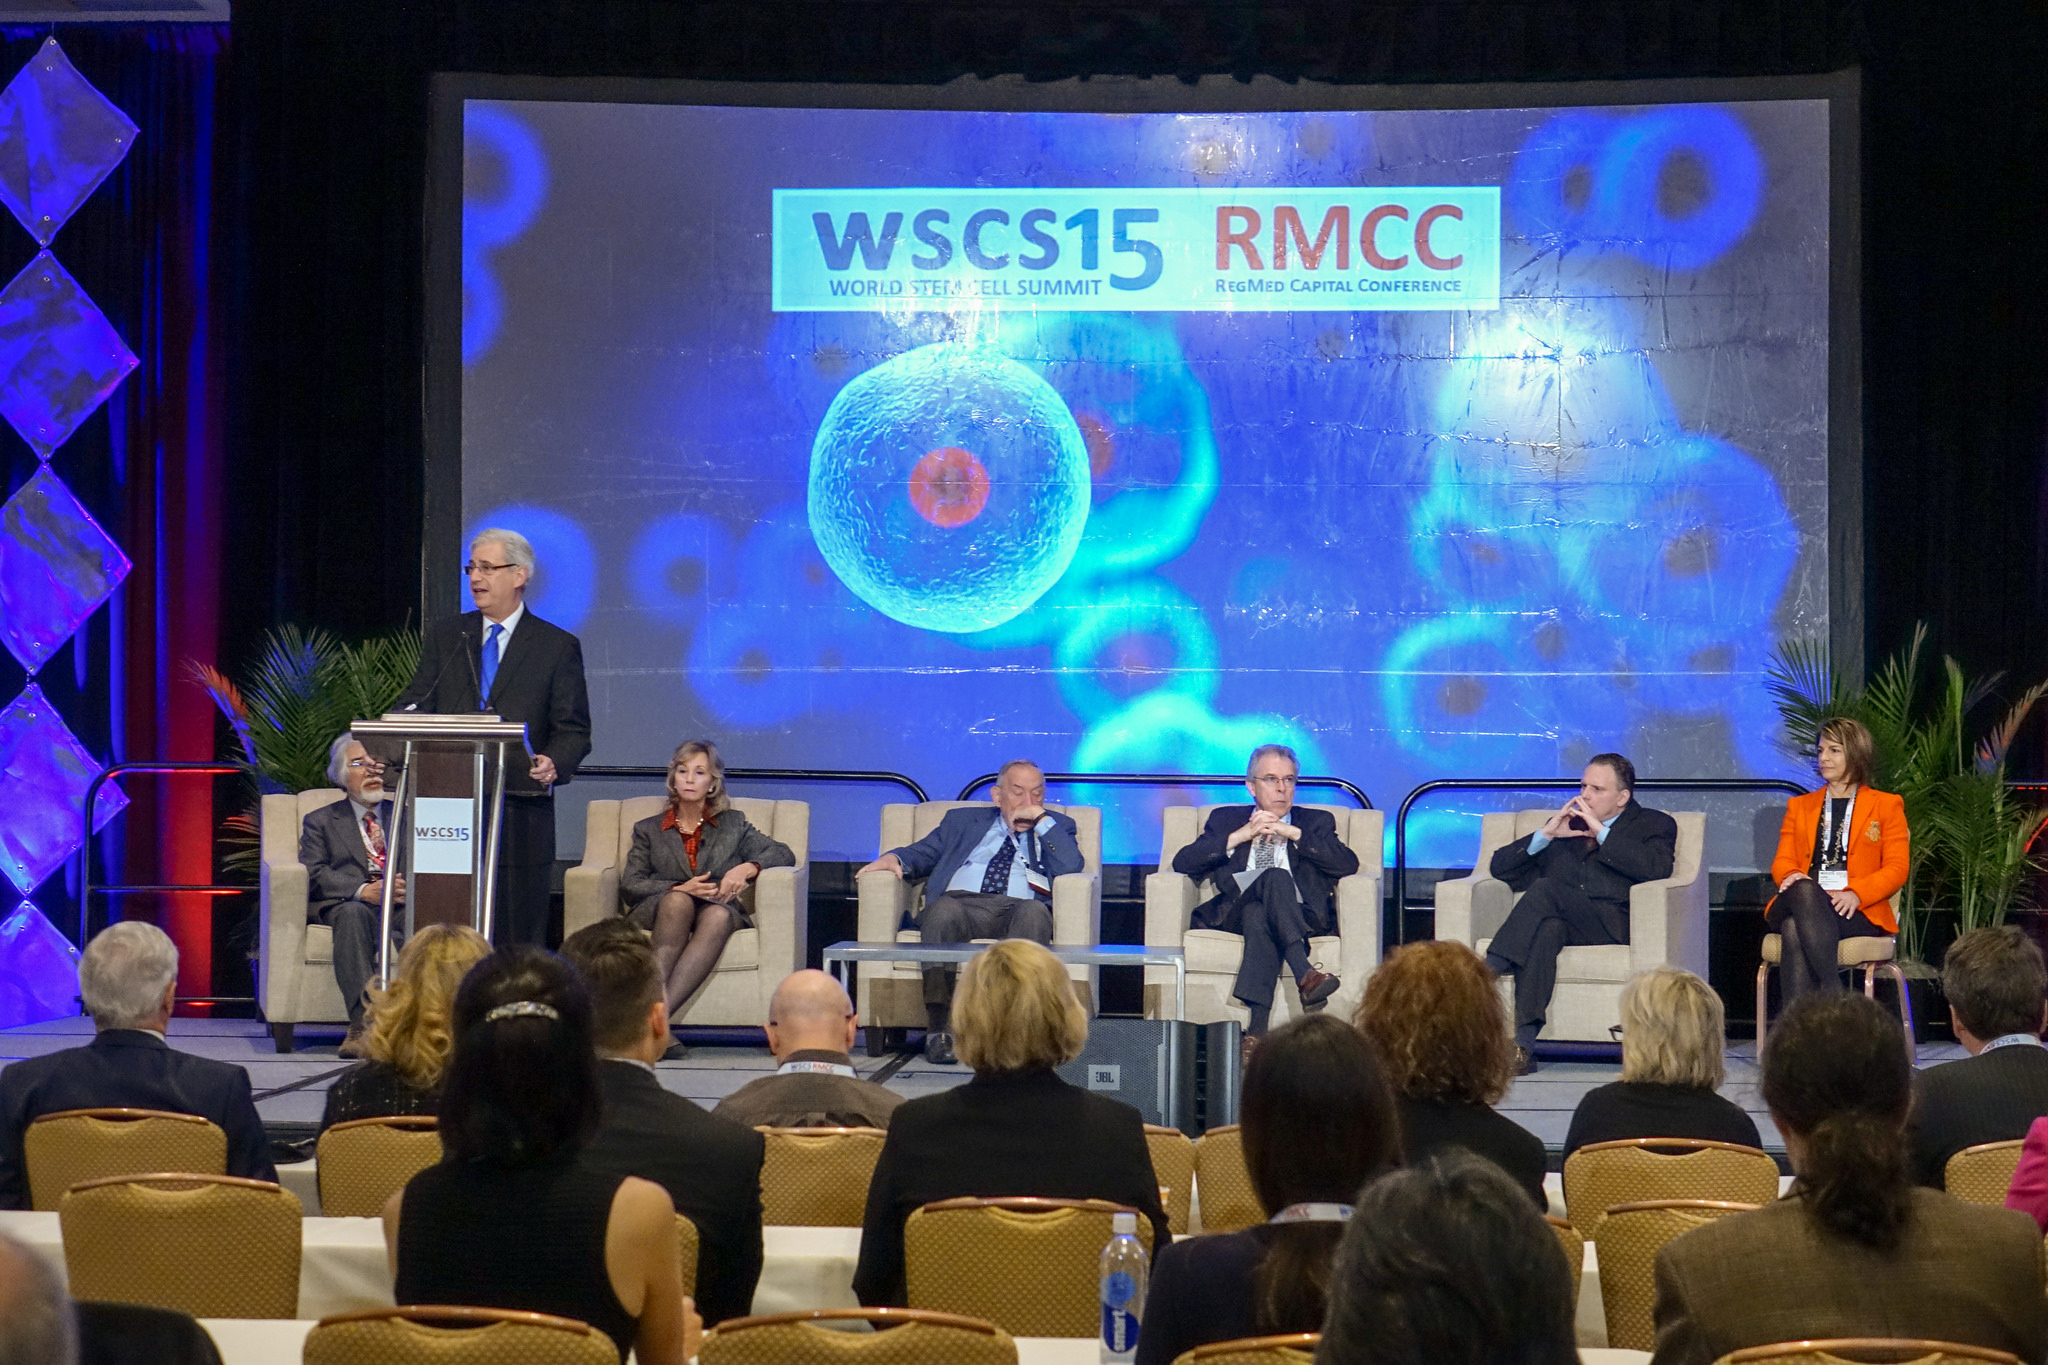 Top 10 Quotes from Day 1 of the World Stem Cell Summit - #WSCS15